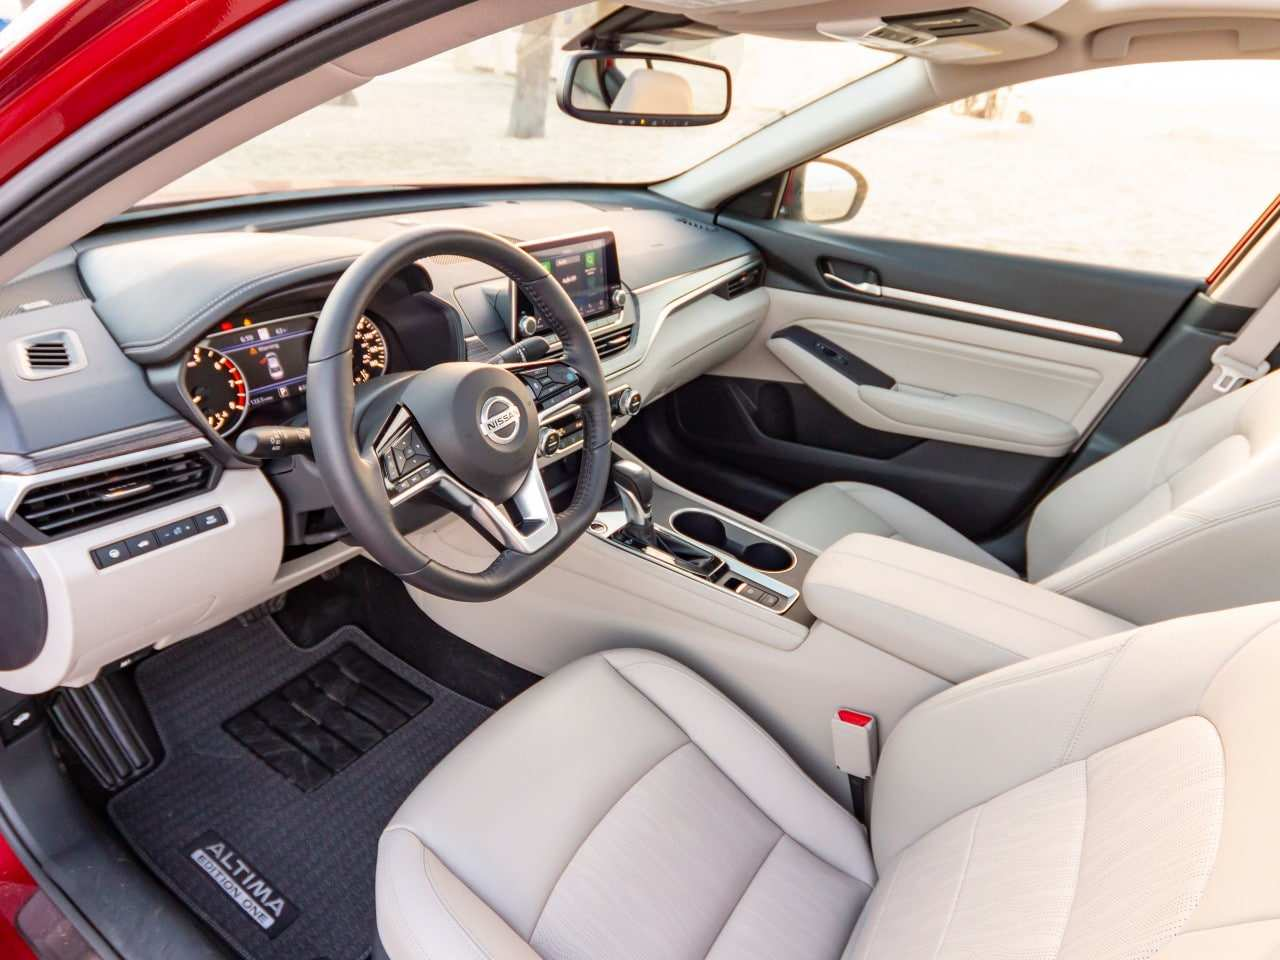 53 Great 2019 Nissan Altima Interior Review by 2019 Nissan Altima Interior